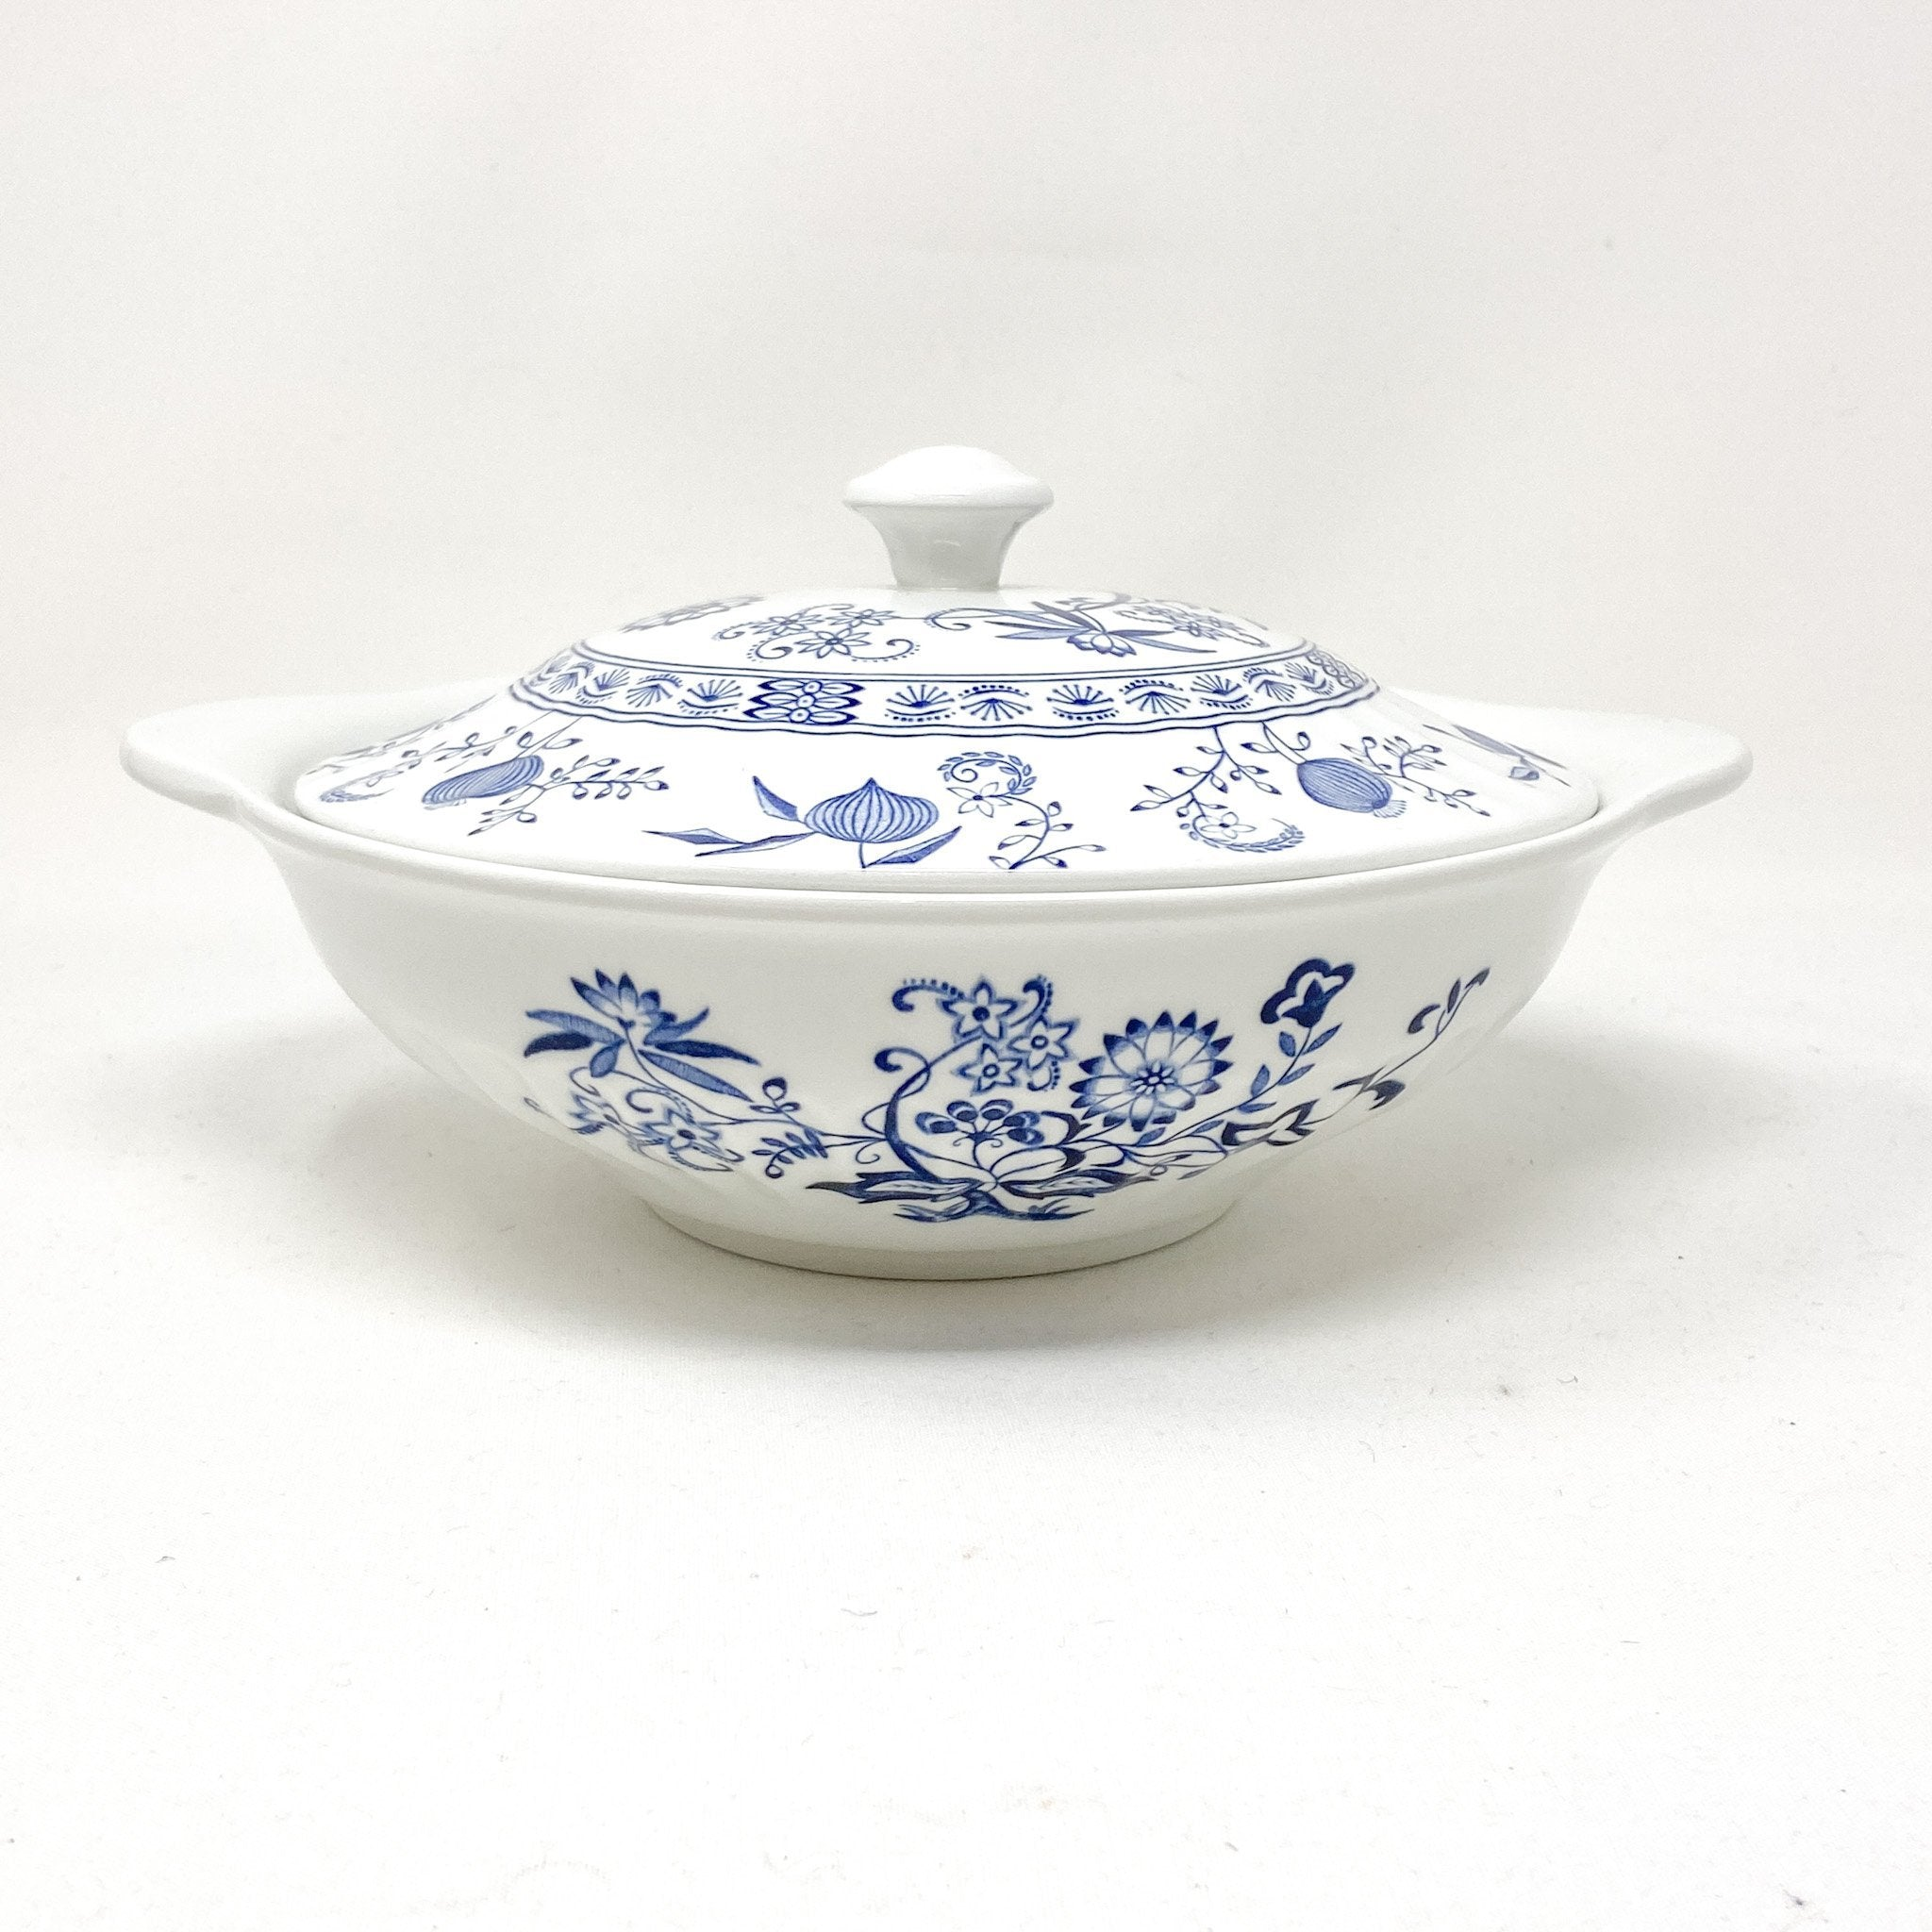 Signature Blue & White Casserole Dish | The Brooklyn Teacup - for large meals and gatherings with family and friends